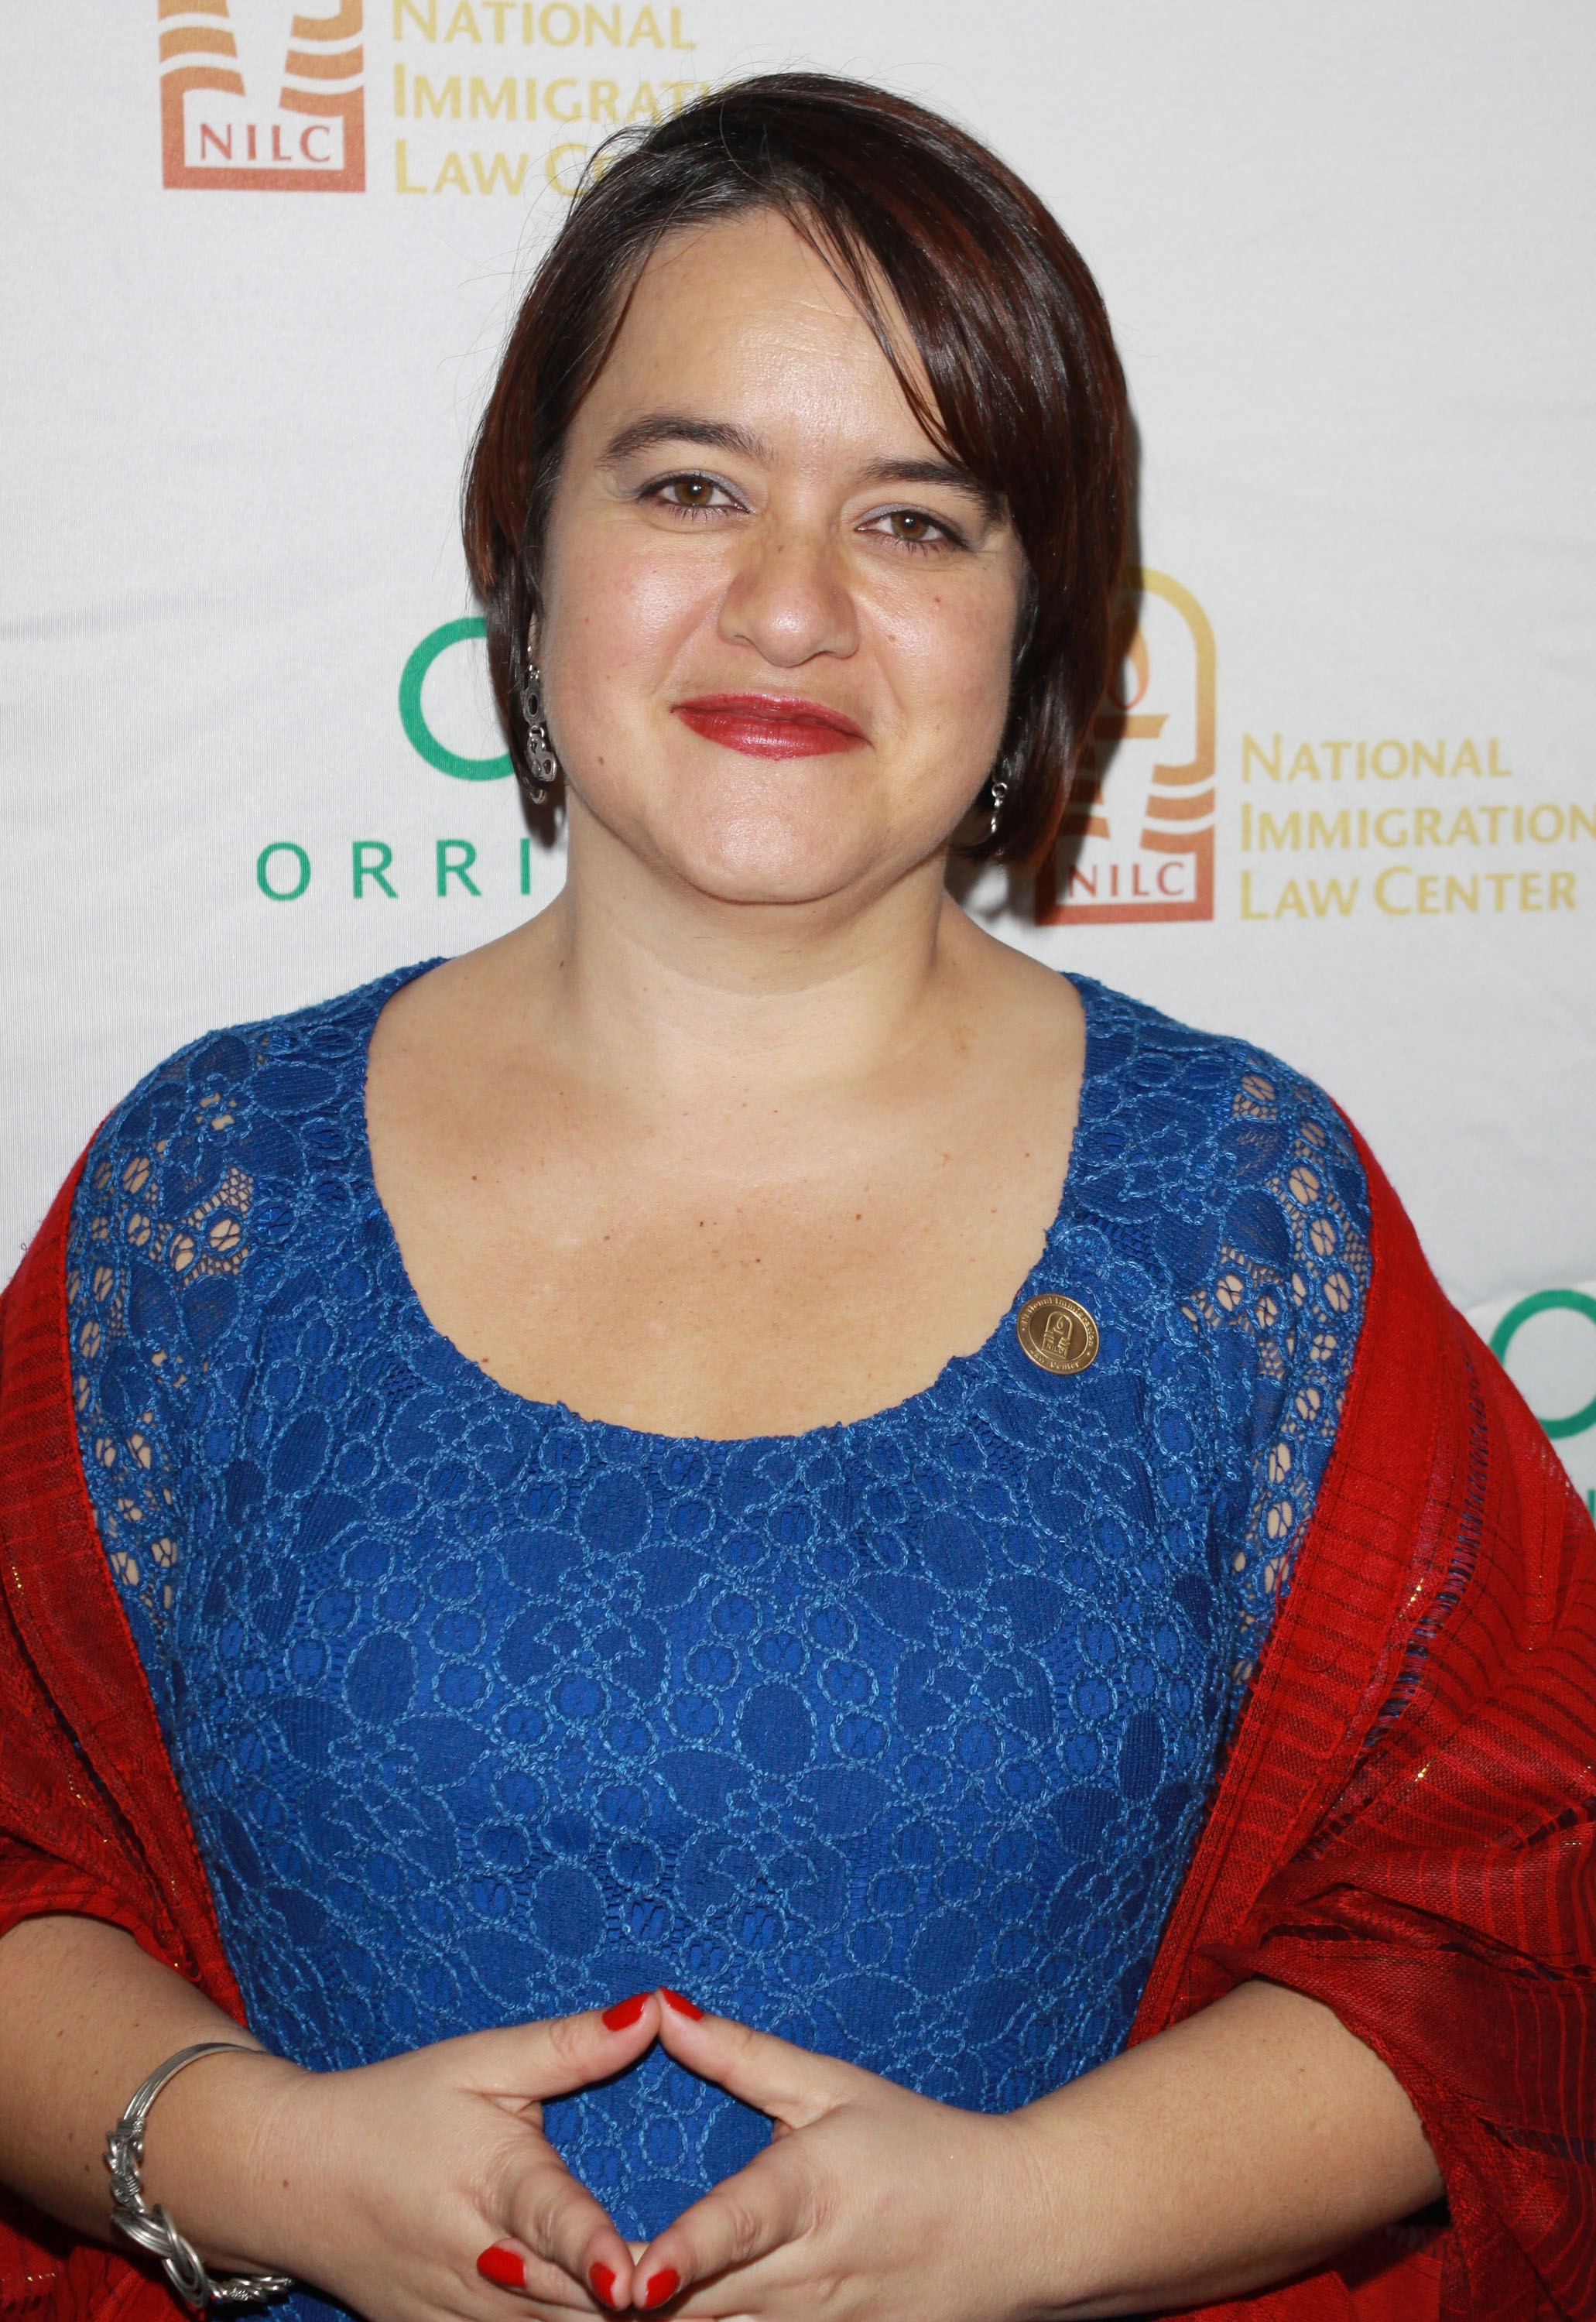 National Immigration Law Center's Courageous Luminaries Awards Dinner